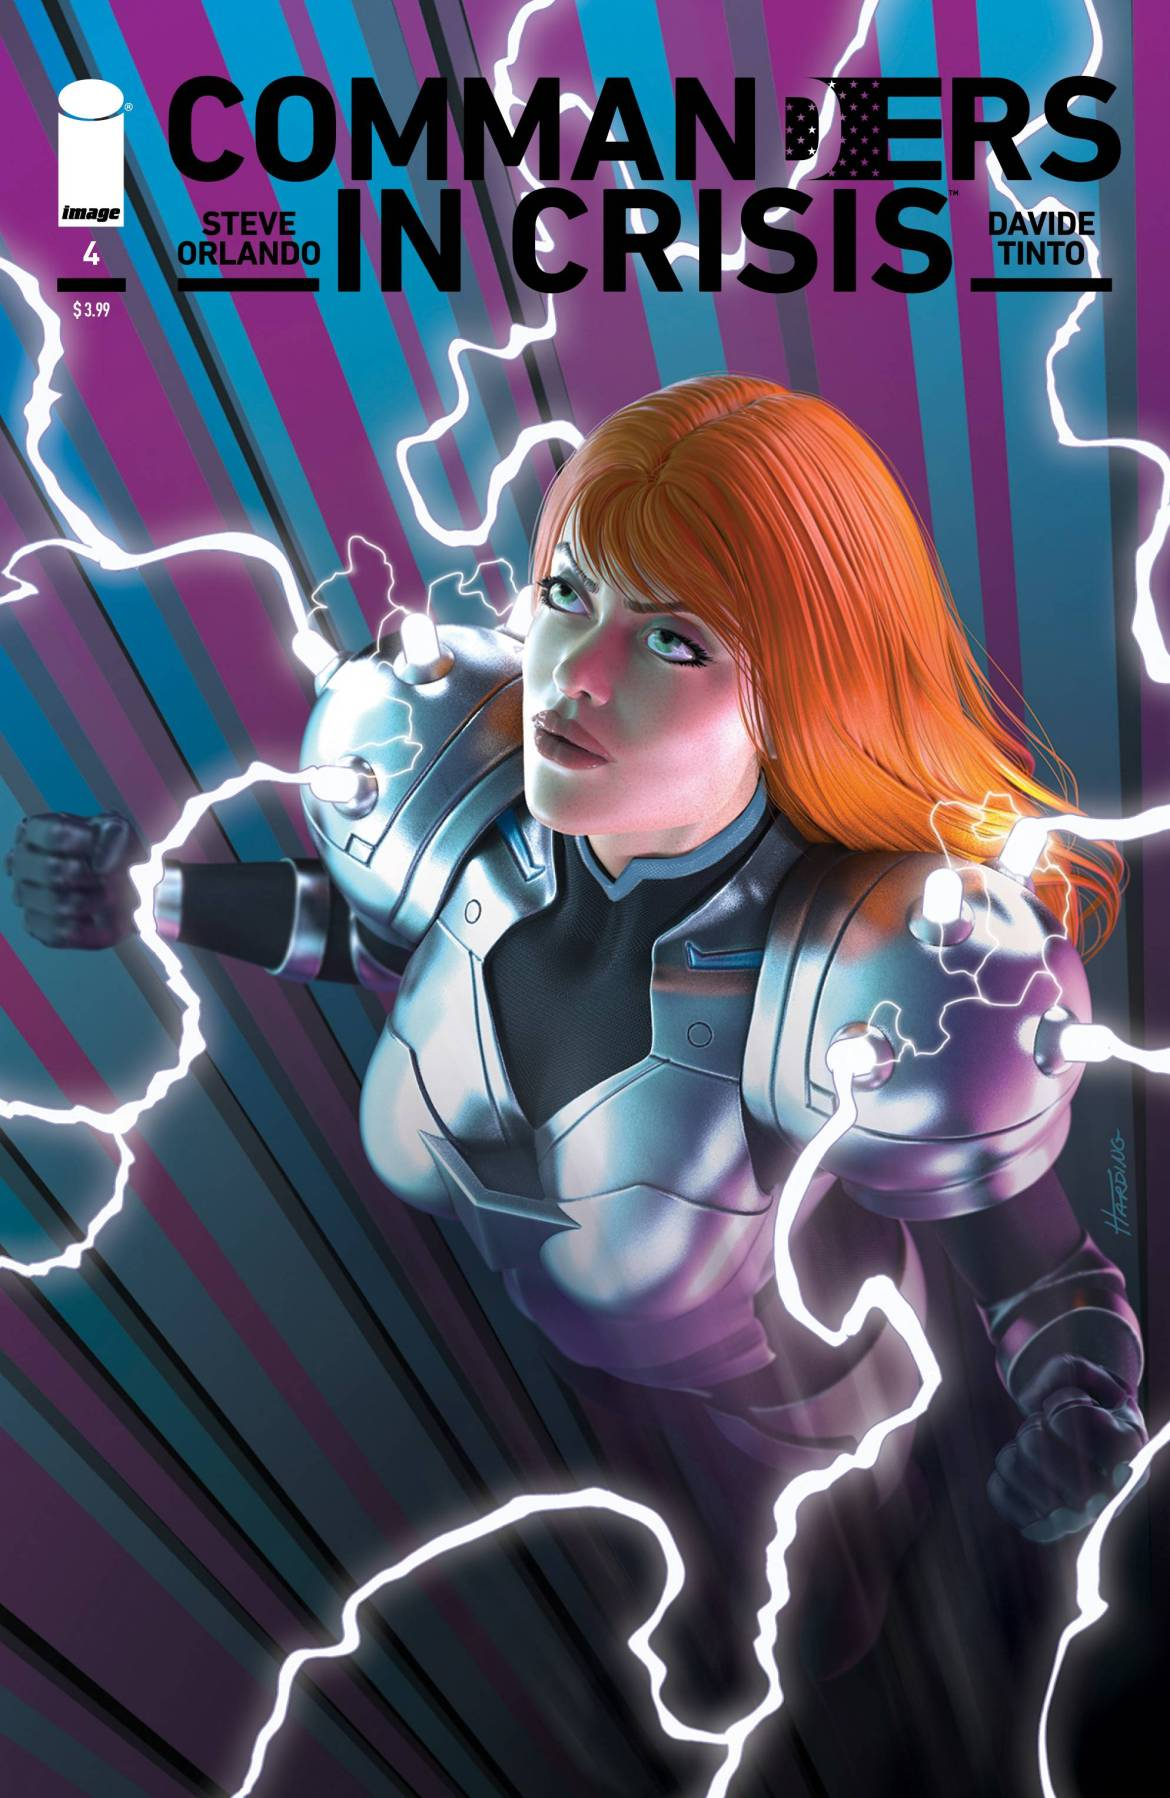 STL180965 ComicList: Image Comics New Releases for 01/13/2021